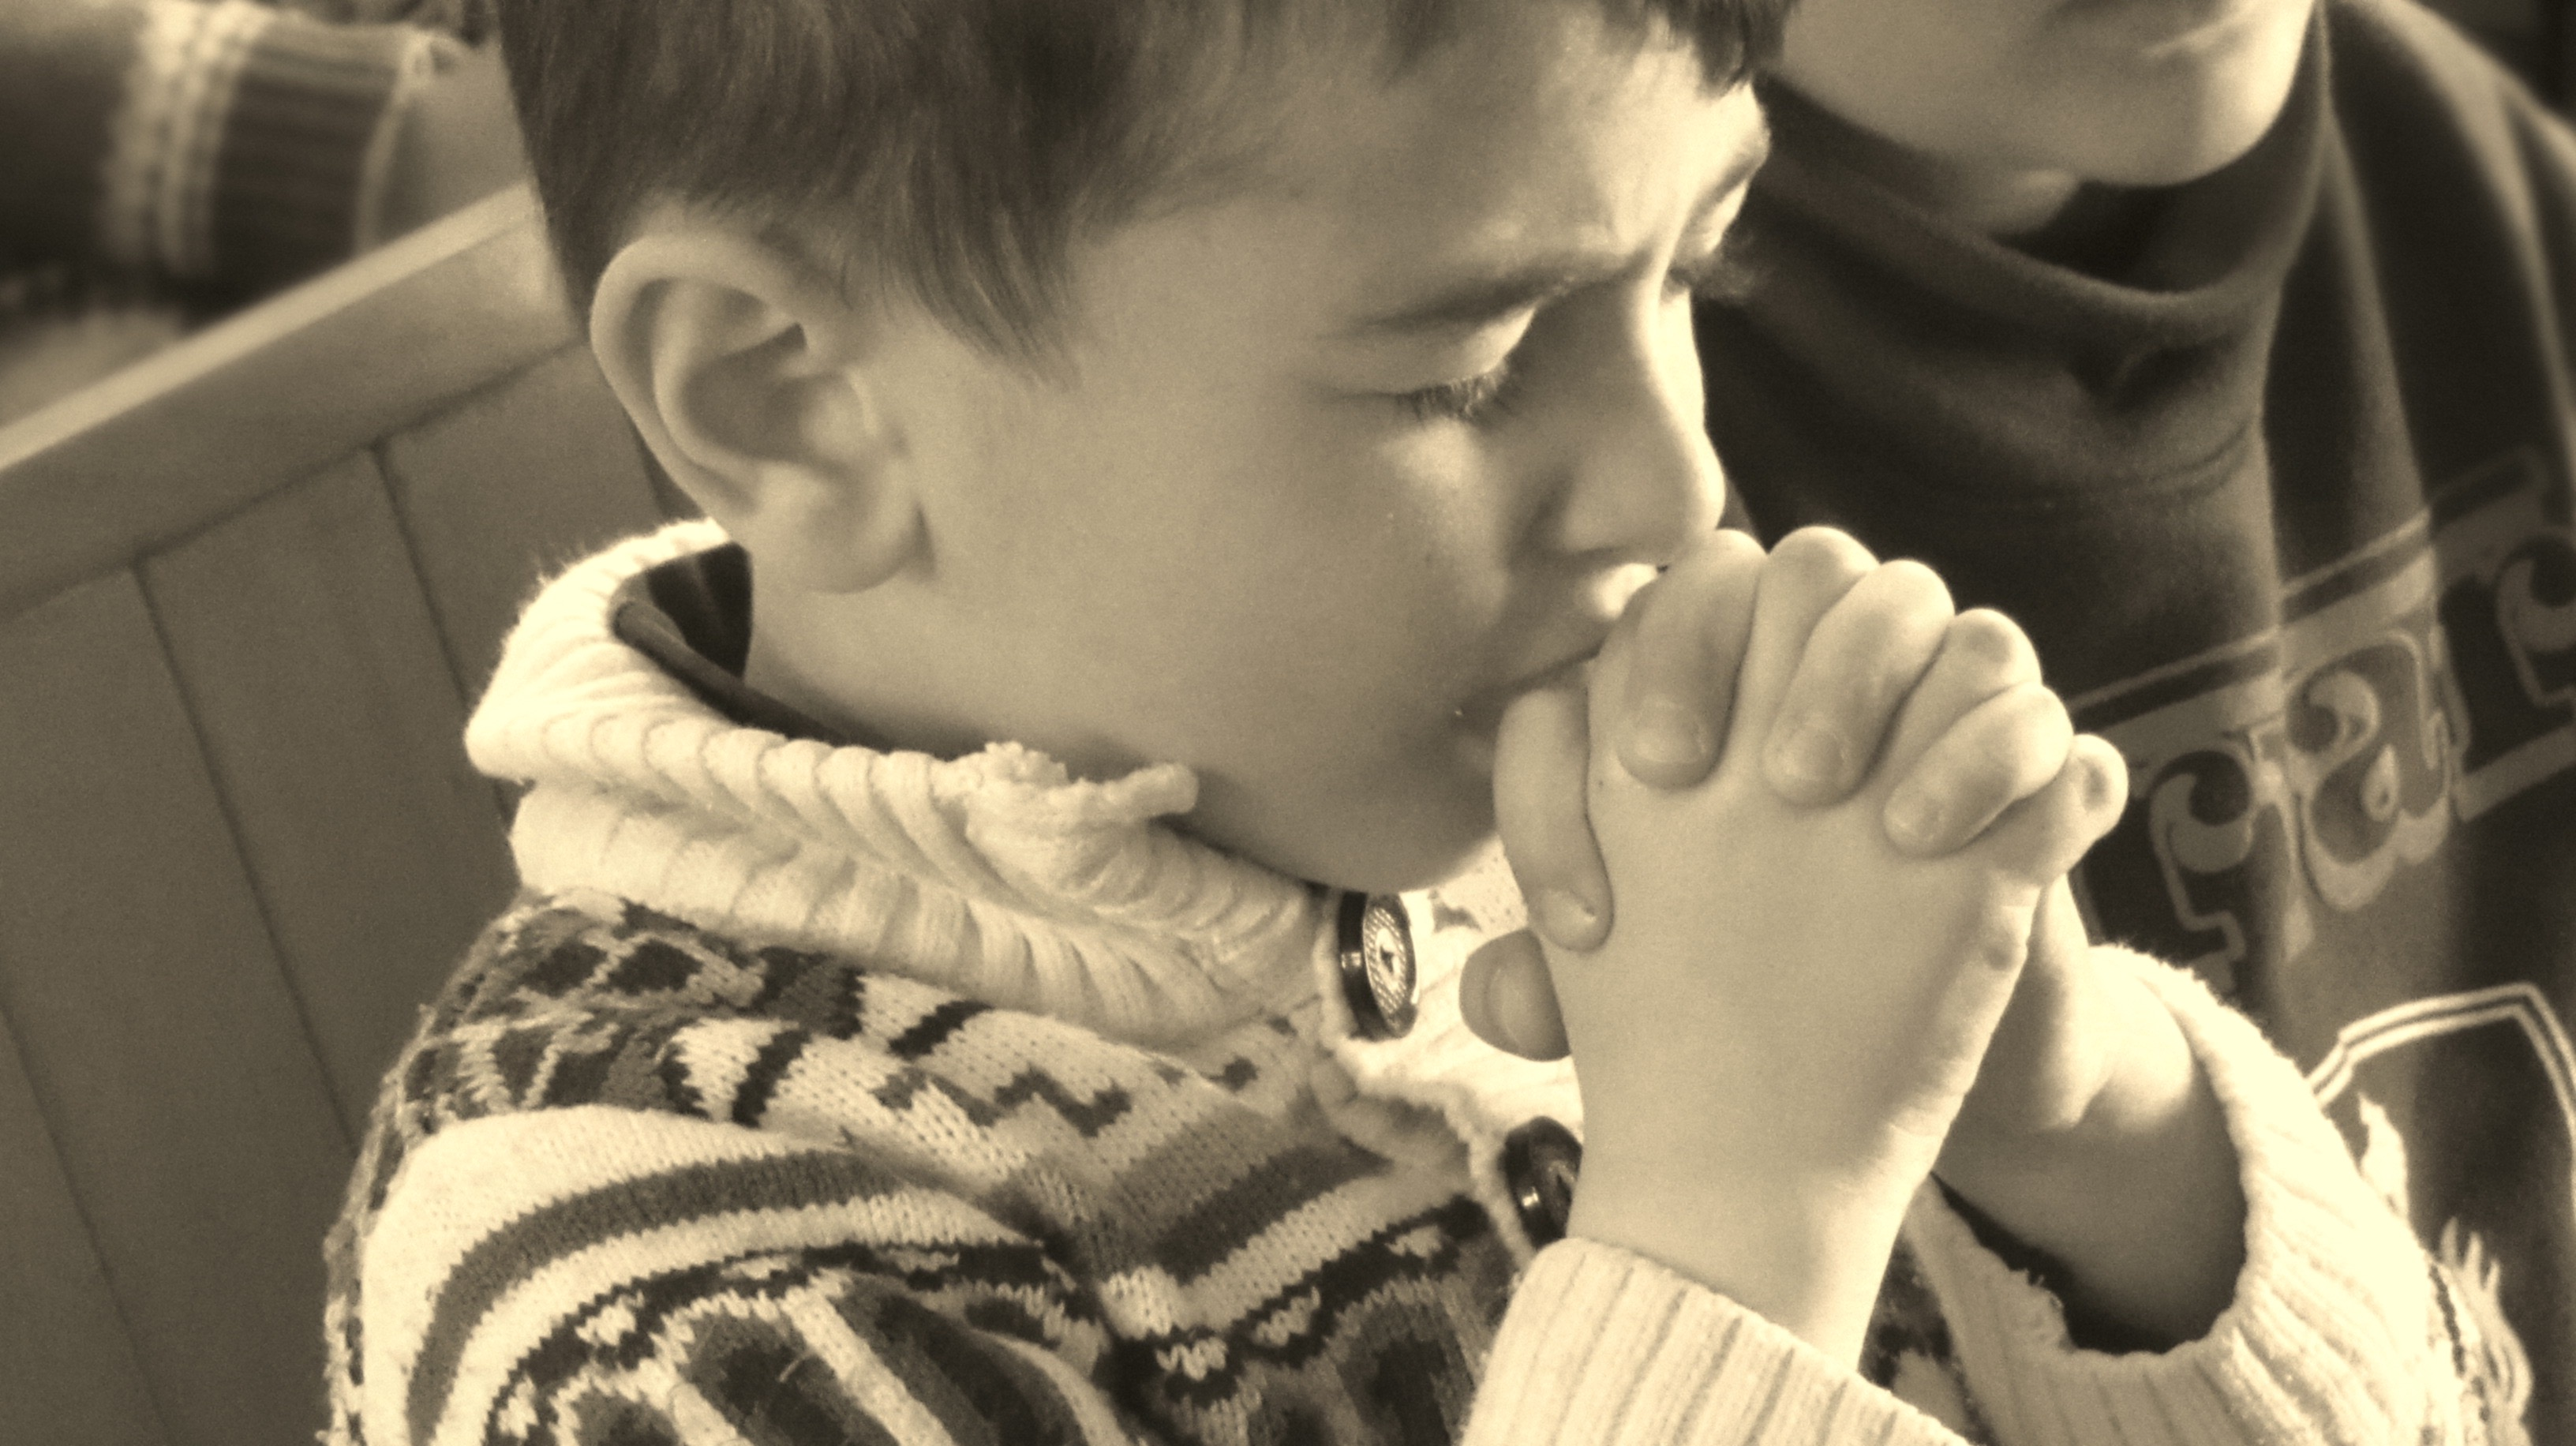 Syrian Kids in Prayer and Worship